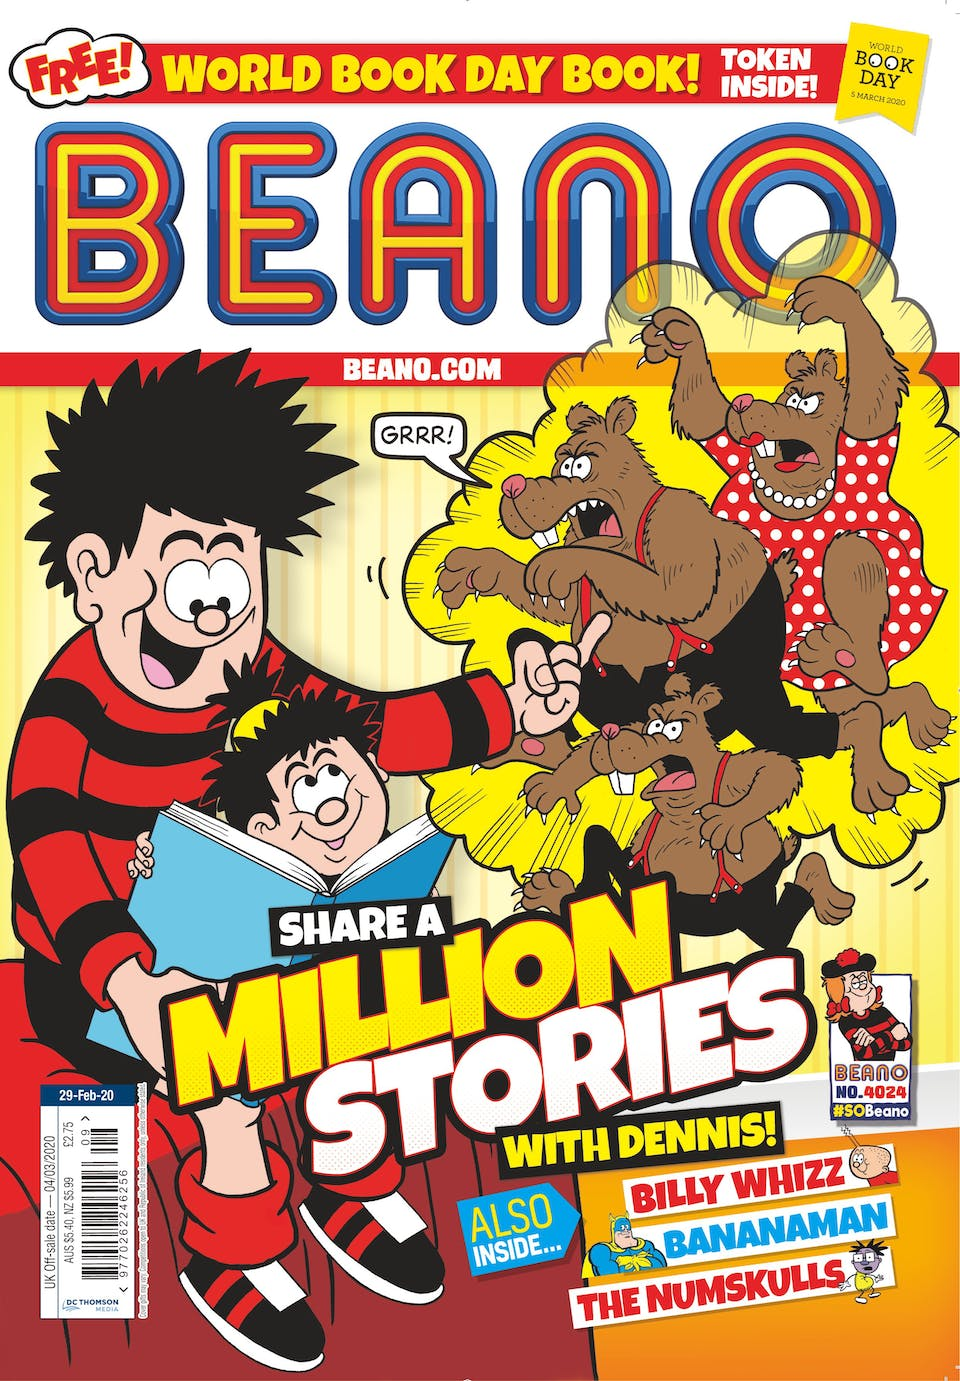 Inside Beano 4024 - Share a Million Stories With Dennis!